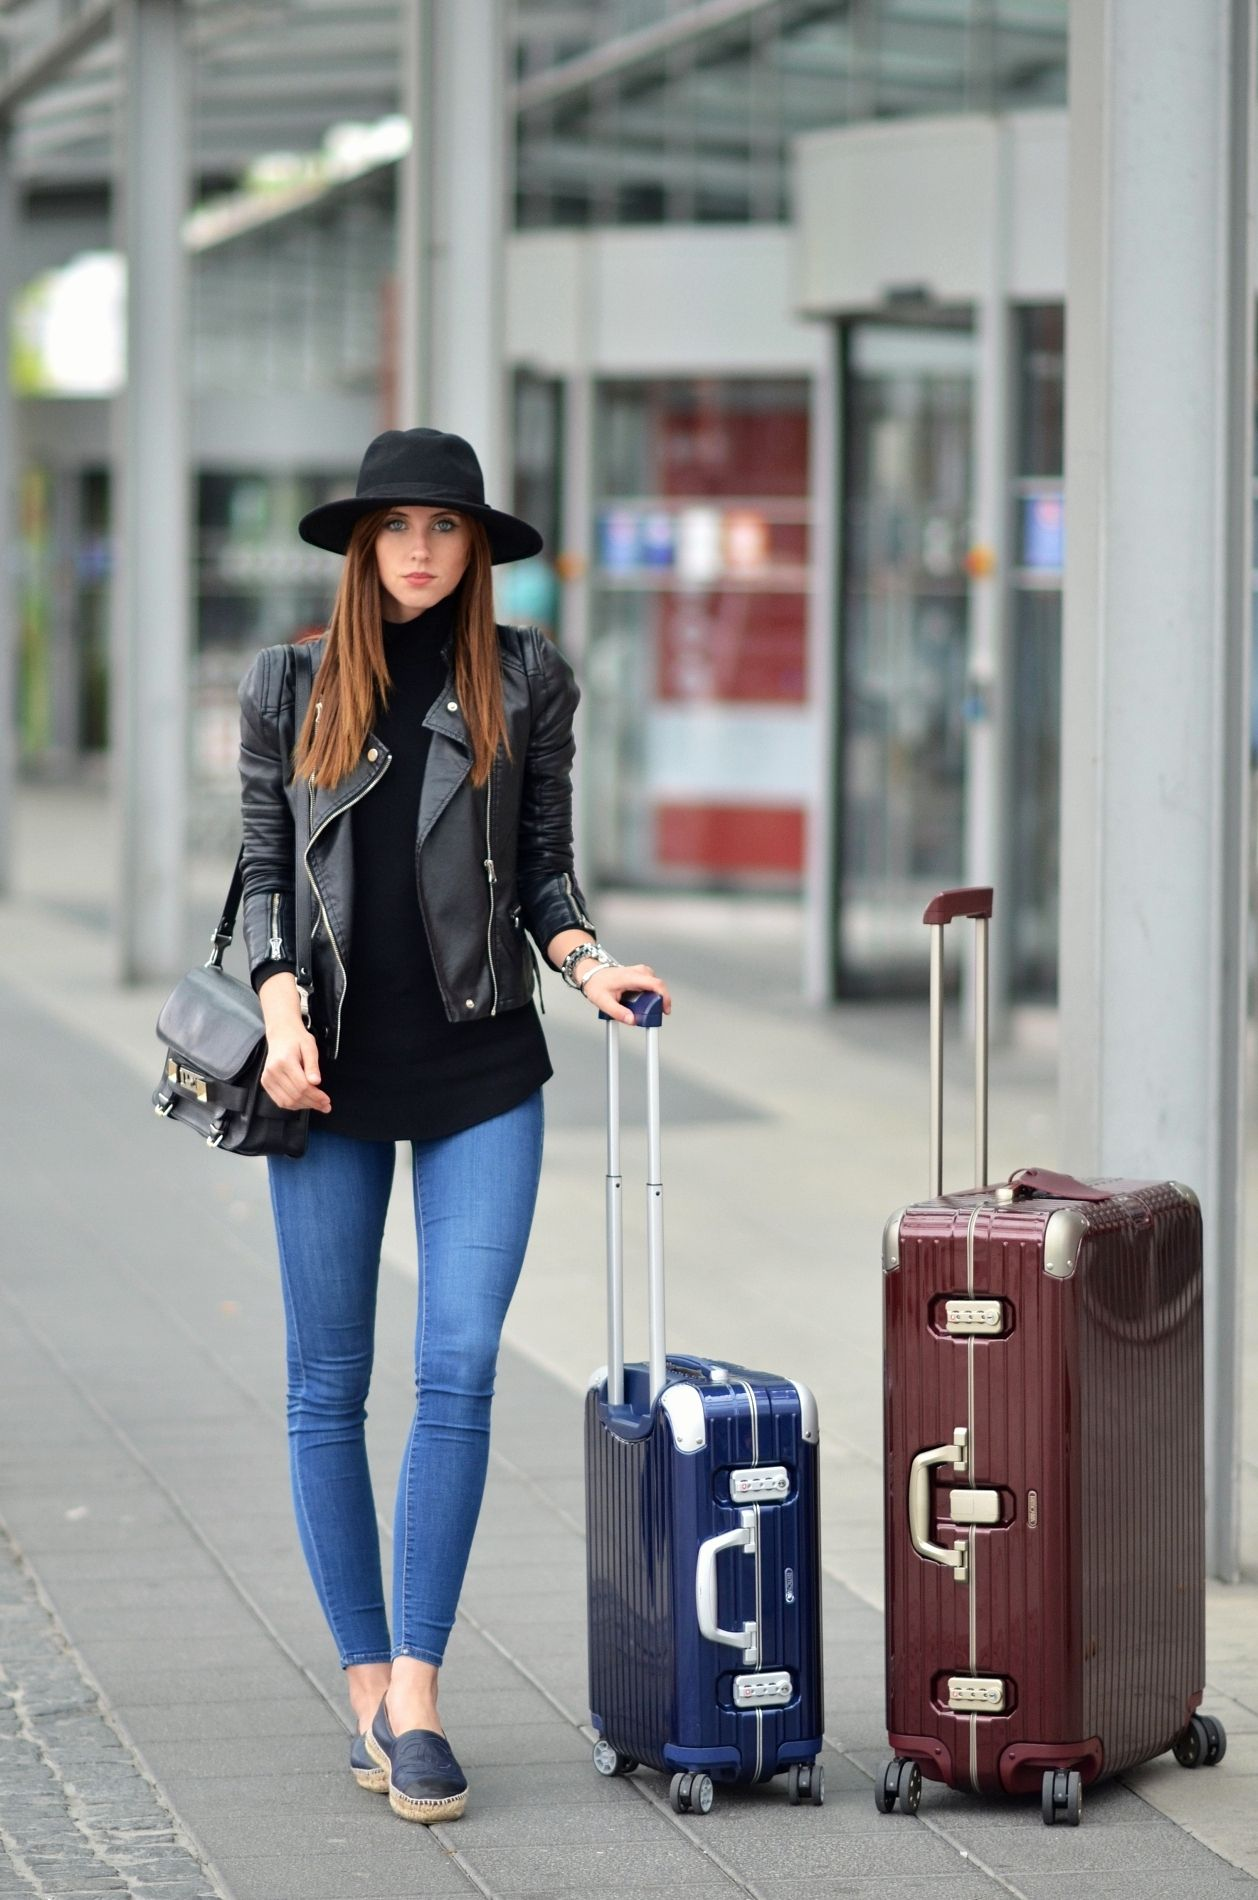 Travel Outfits Airport Style How To Look Fashionable During Travel Fashion Outfits Airport Style